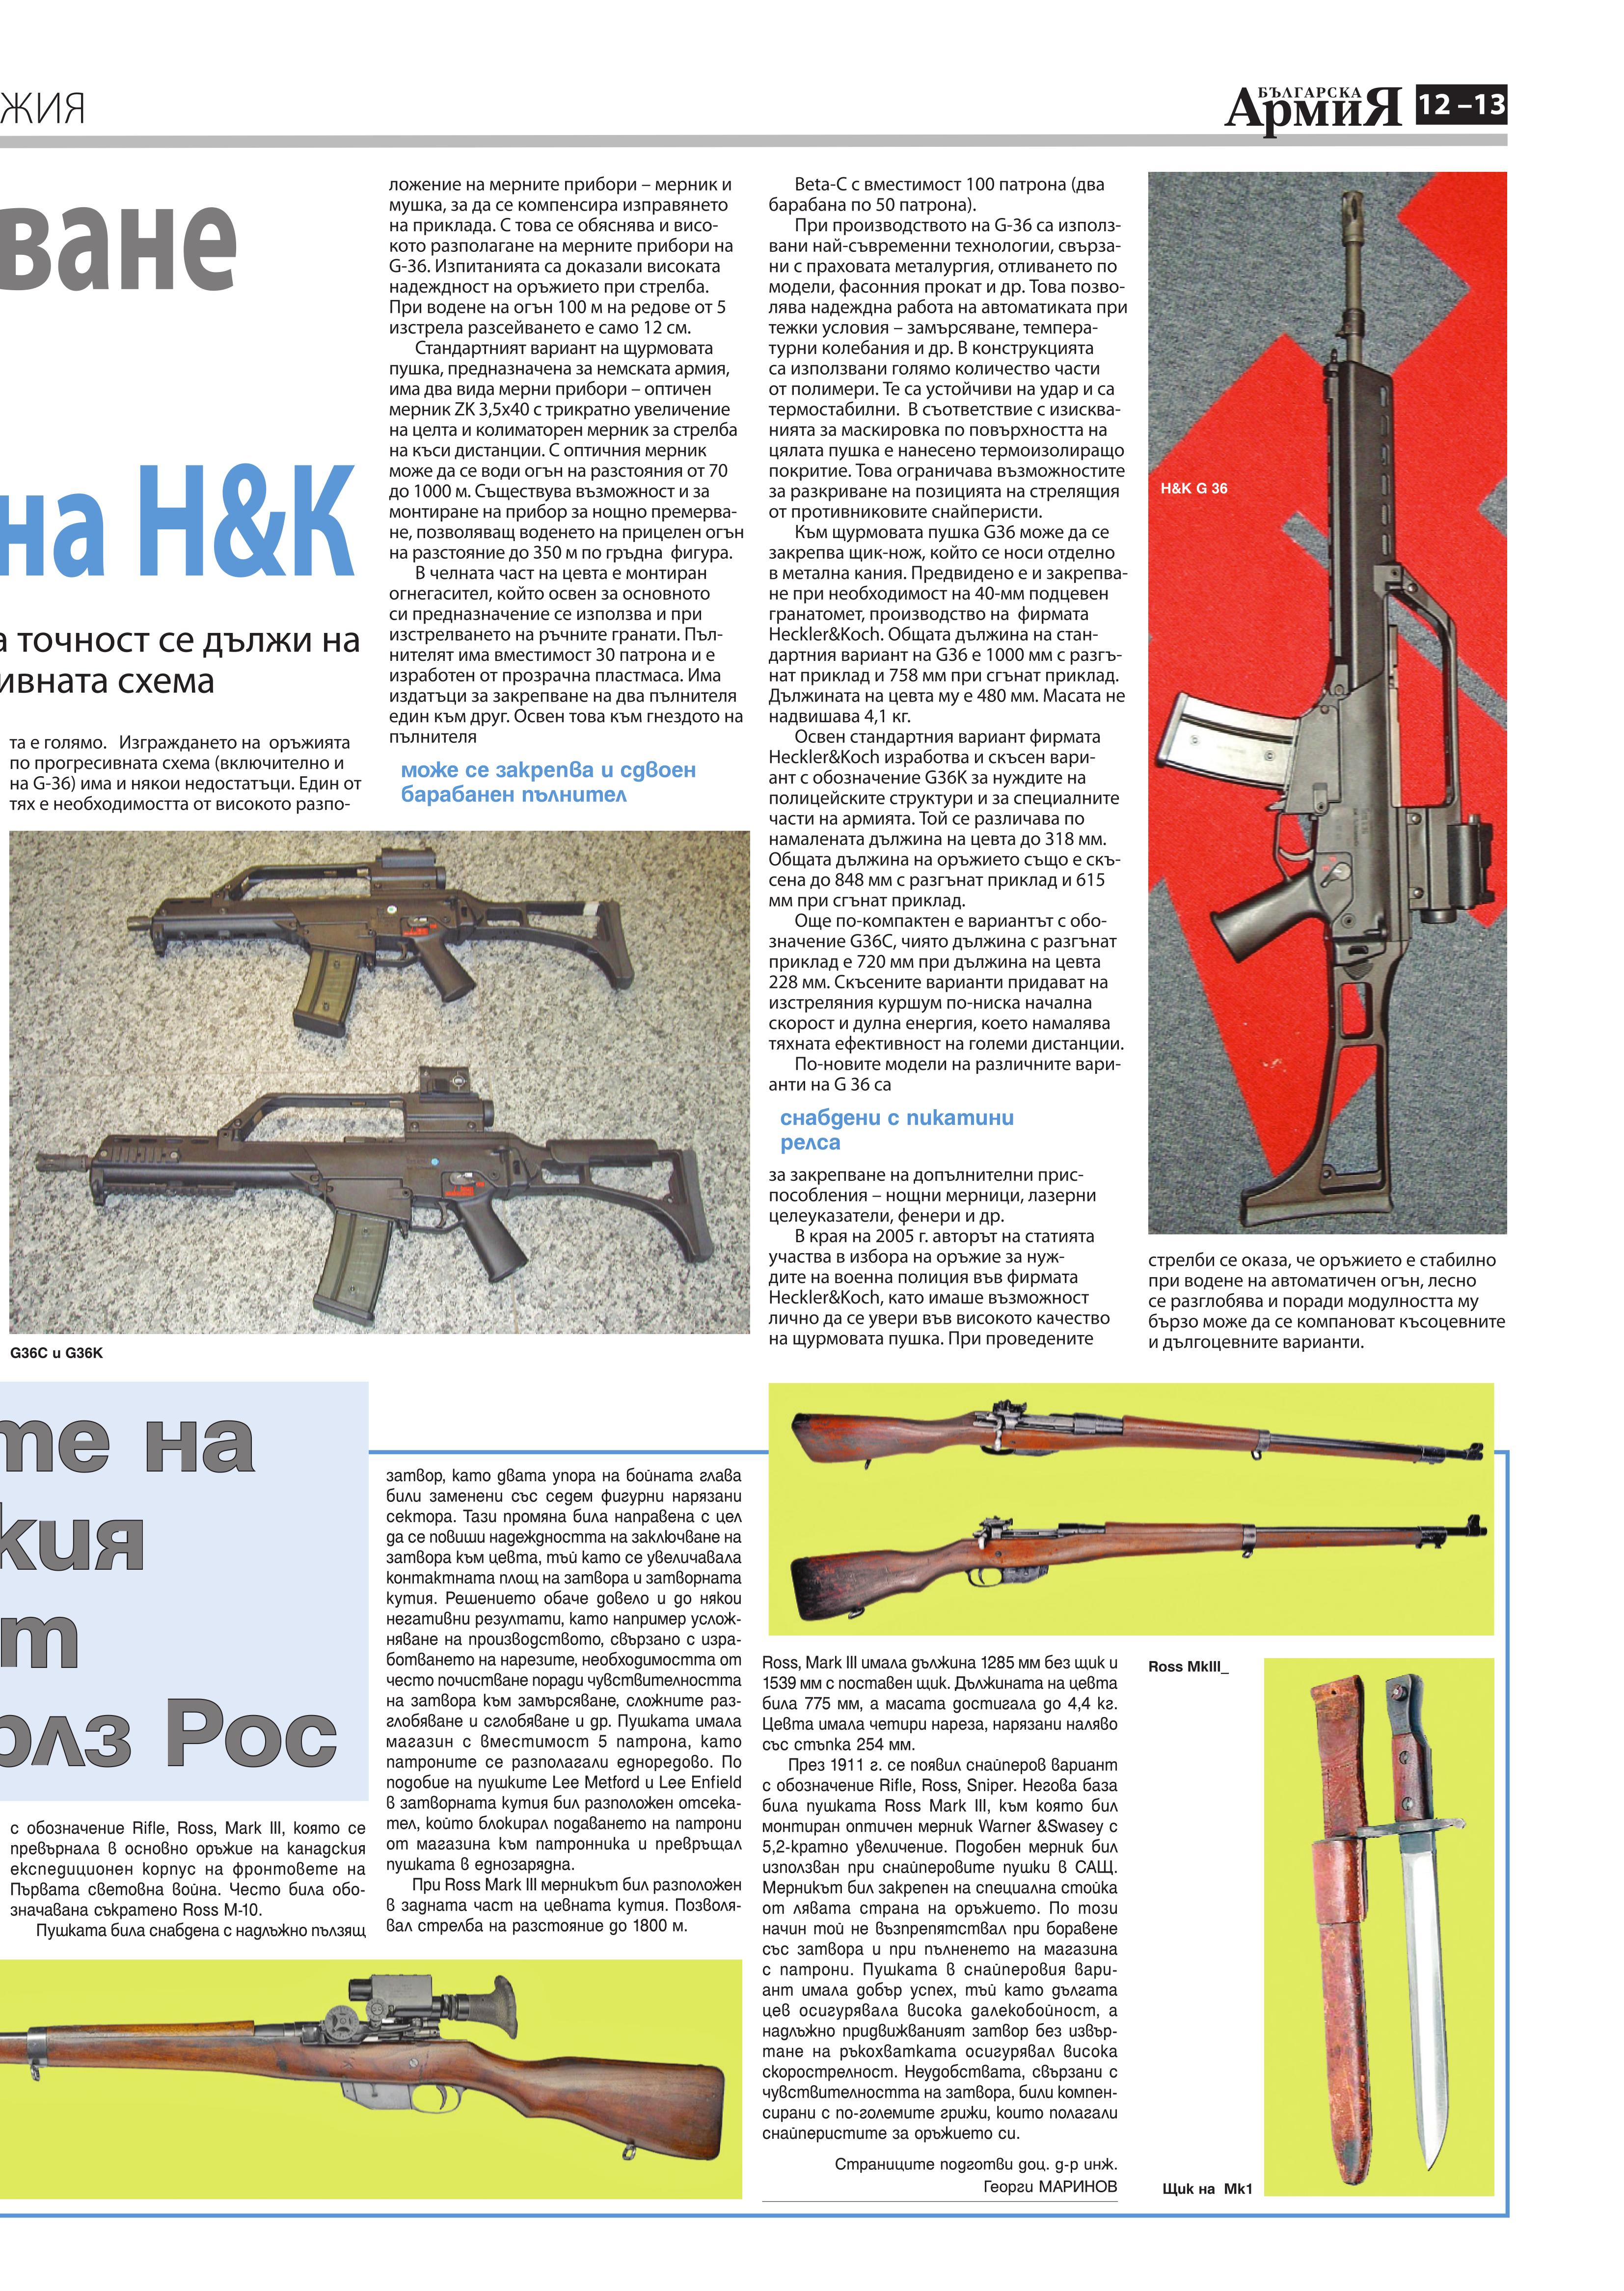 https://armymedia.bg/wp-content/uploads/2015/06/13.page1_-137.jpg